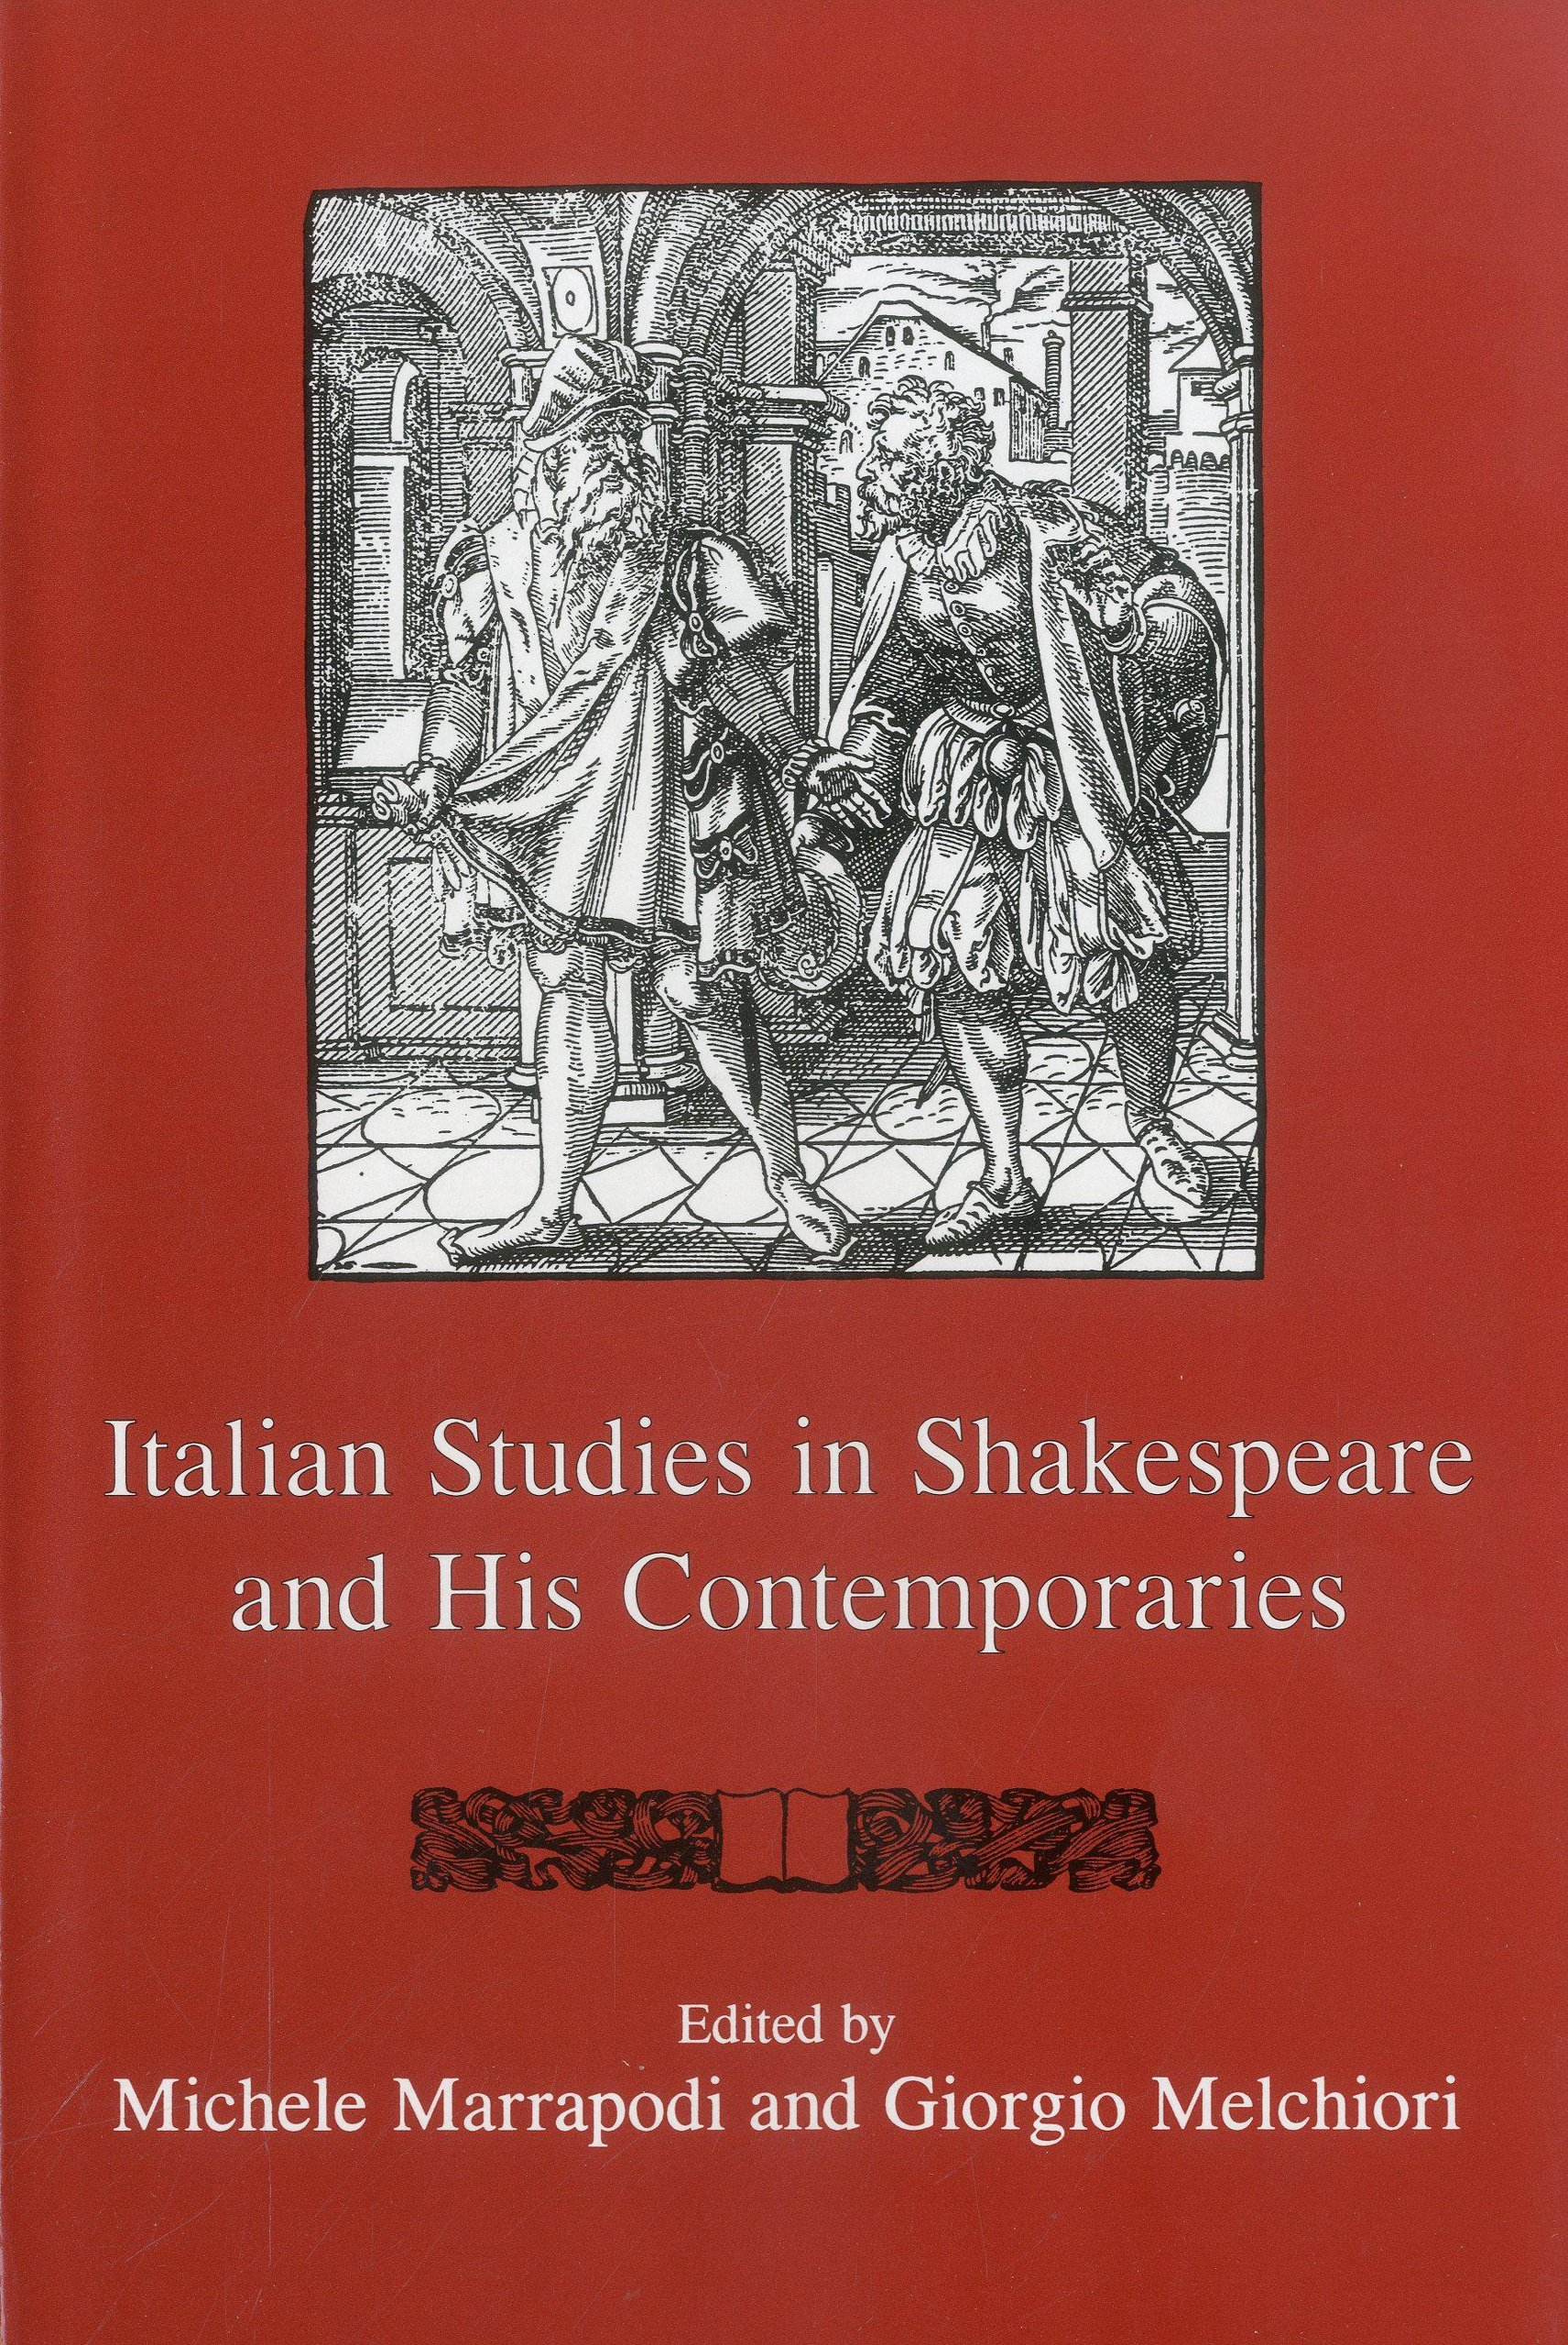 Italian Studies In Shakespeare and His Contemporaries (Shakespeare and His Contemporaries: The International Shakespeare Series) pdf epub